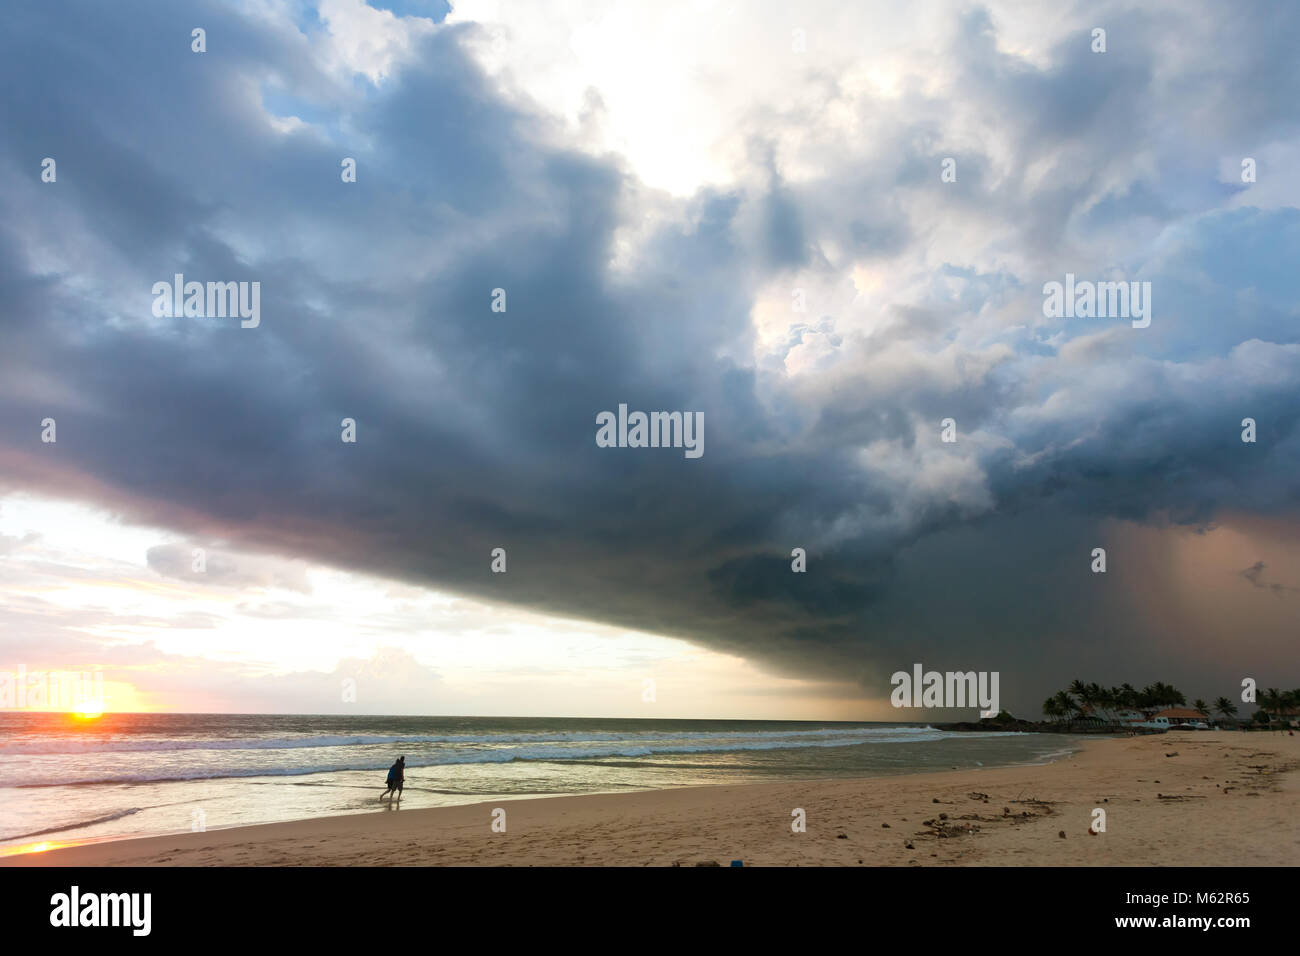 Ahungalla Beach, Sri Lanka, Asia - Impressive atmosphere disturbance during sunset at the beach of Ahungalla - Stock Image